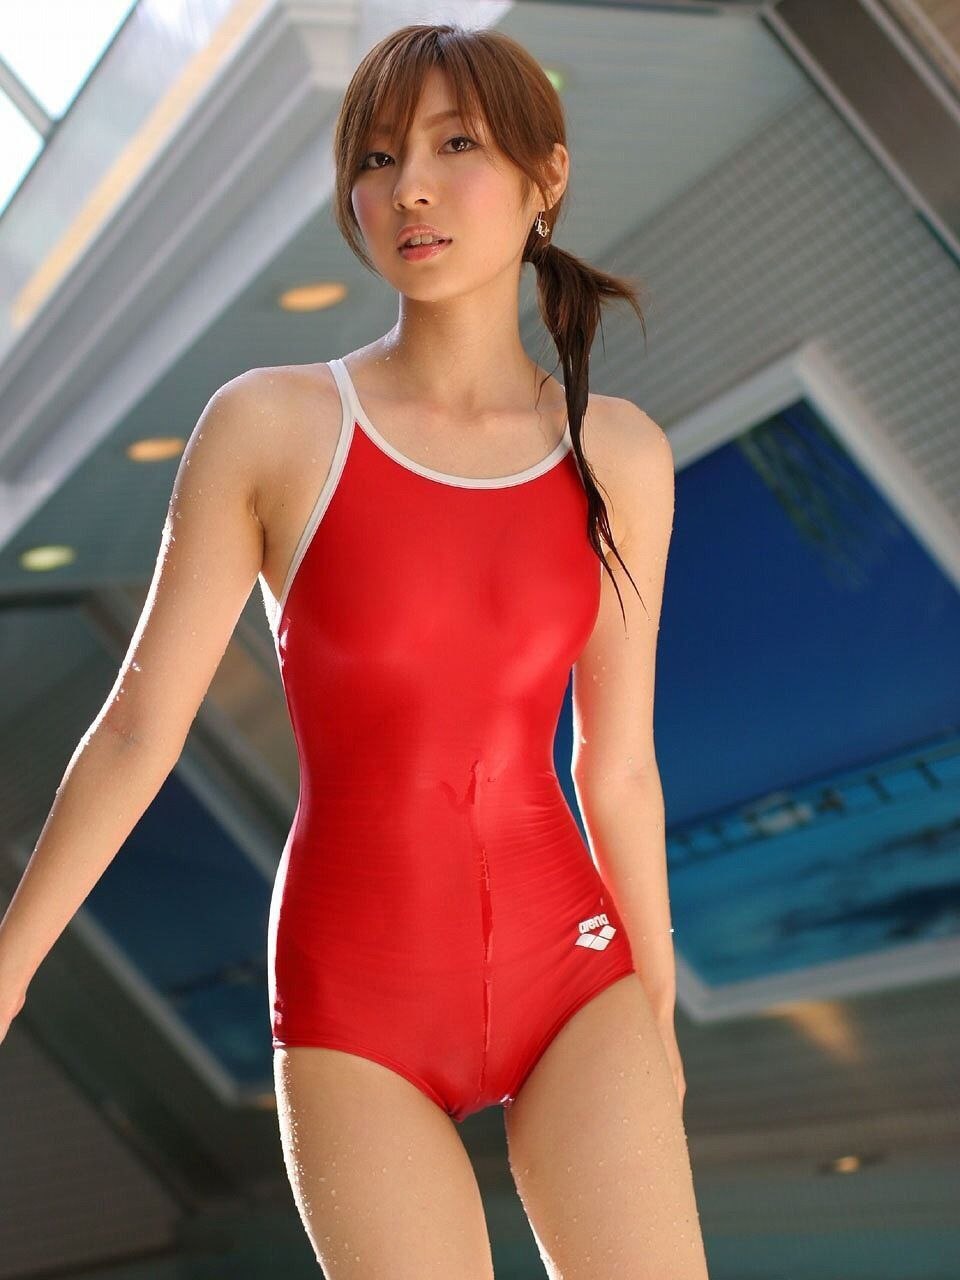 cc0db14d808ce Tight wet swimsuits jpg 960x1280 Tight wet swimsuits